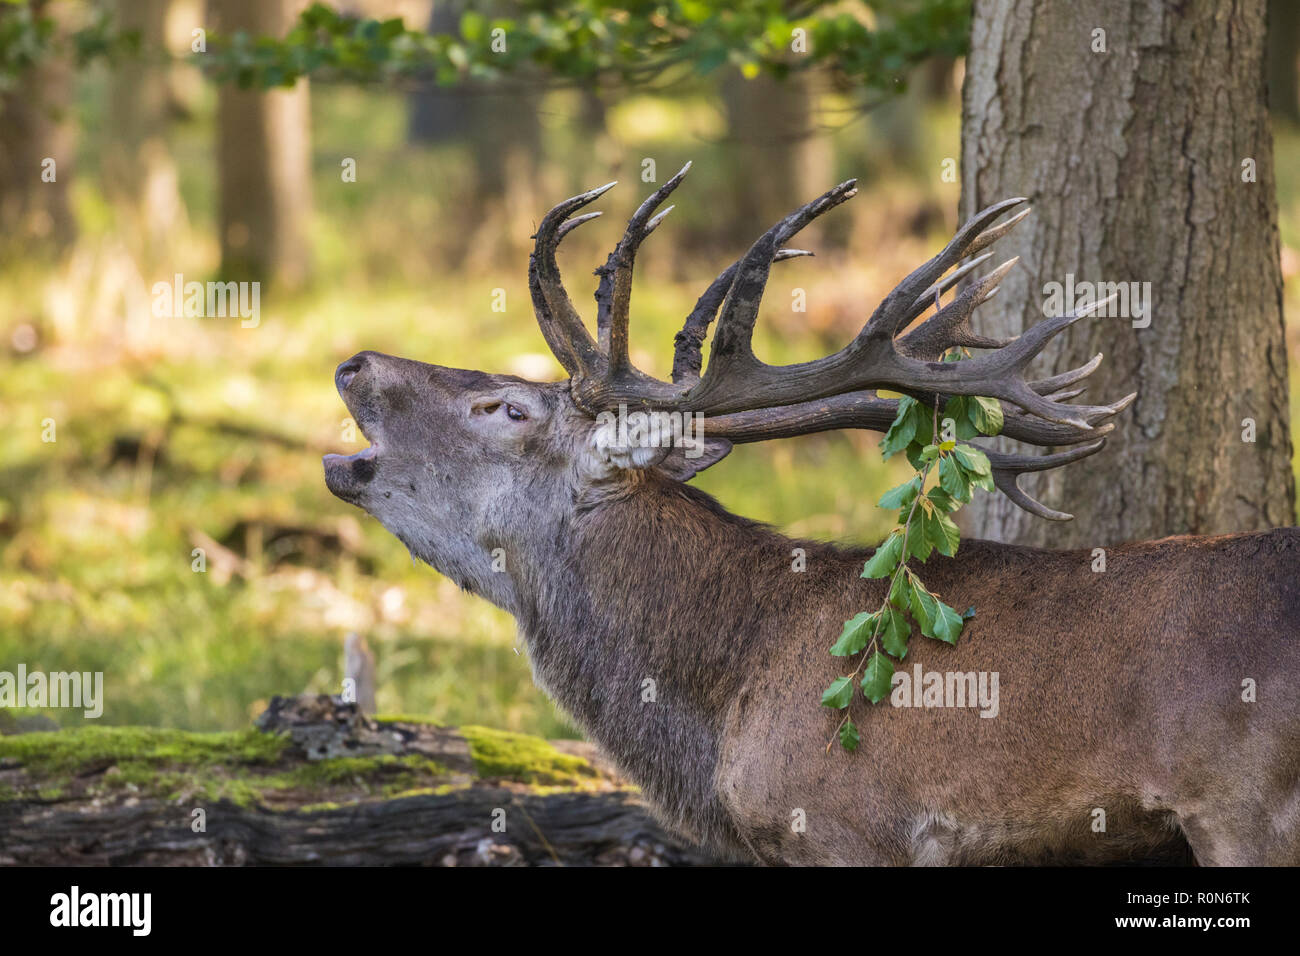 Stag during rut season bellowing, having a piece of a tree bransch in his antler,  at Jaegersborg dyrehaven, Denmark - Stock Image